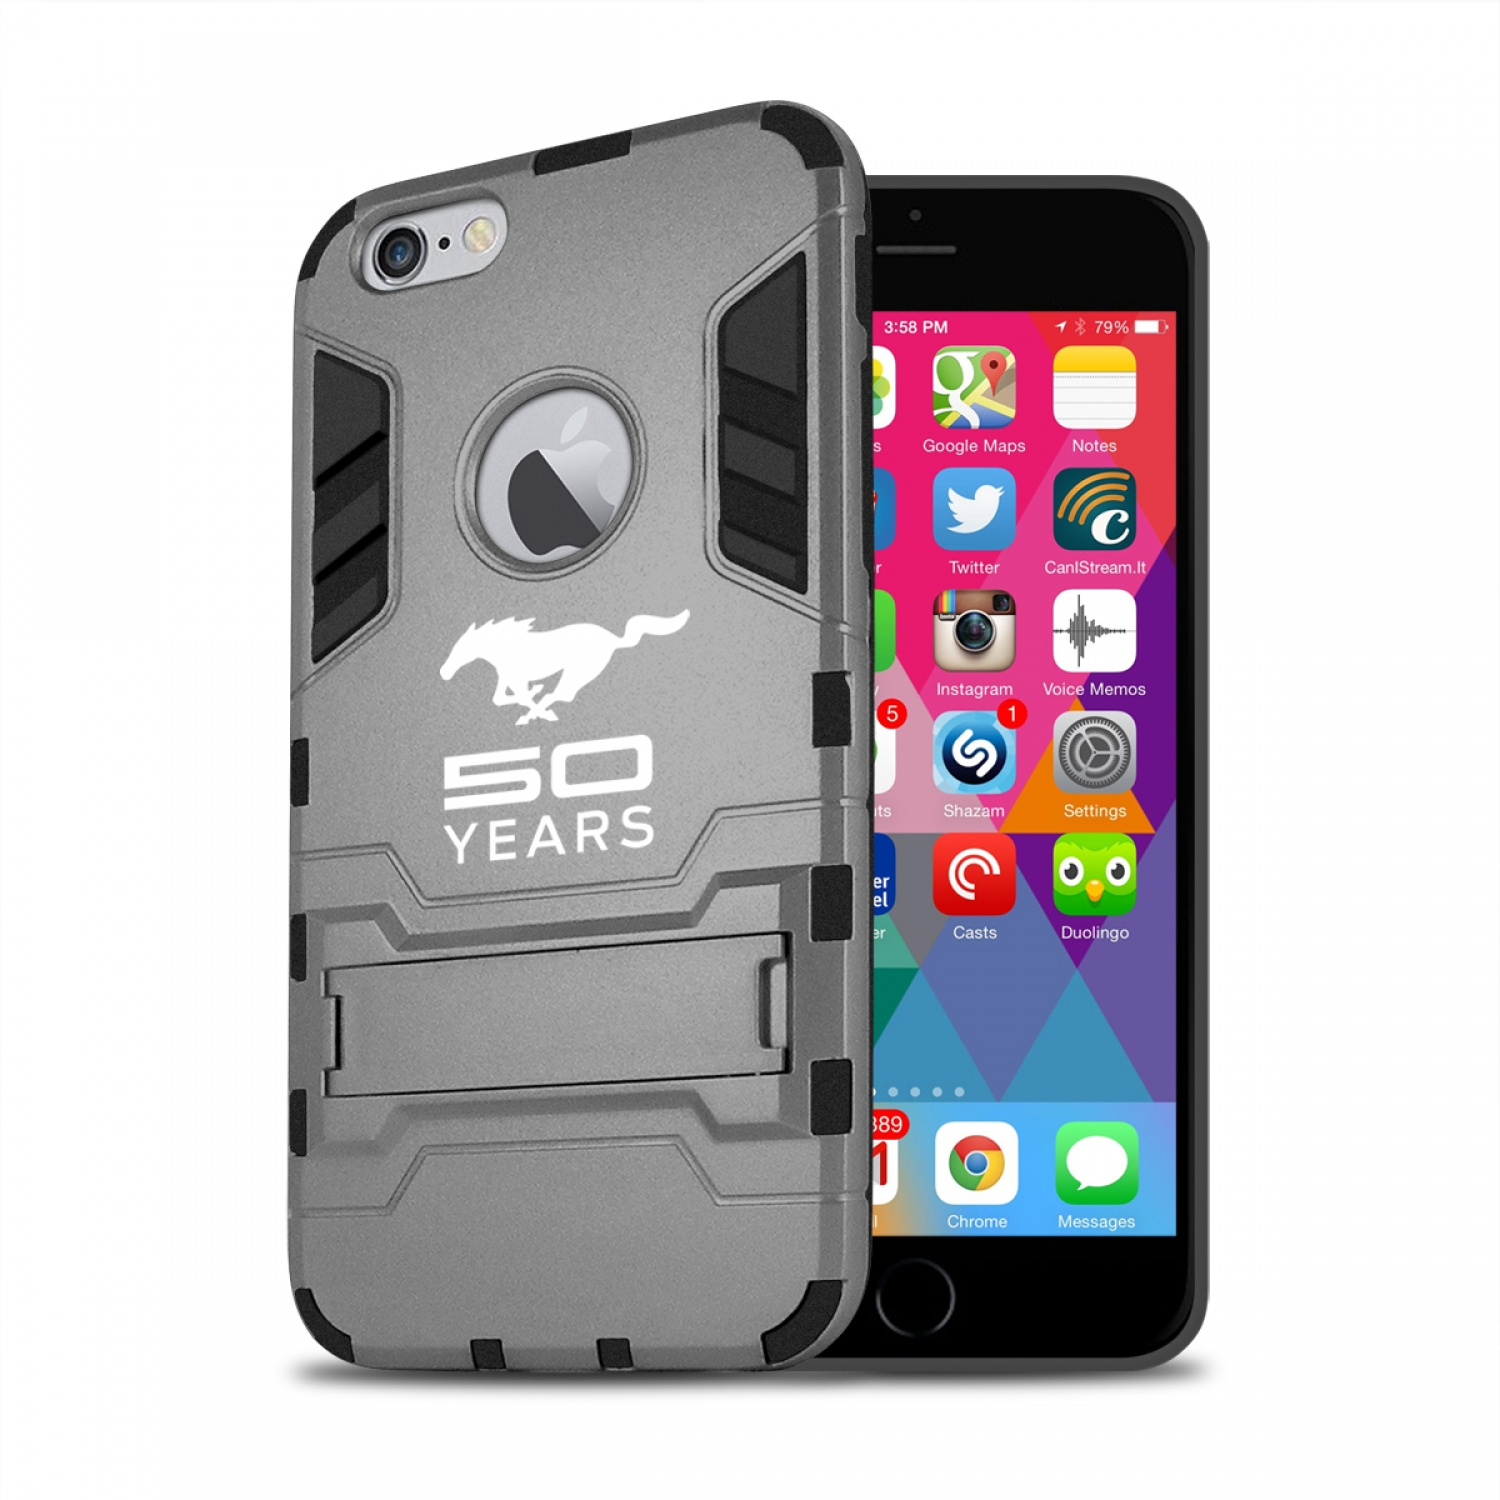 Ford Mustang 50 Years iPhone 6 6s Shockproof TPU ABS Hybrid Dark Gray Phone Case